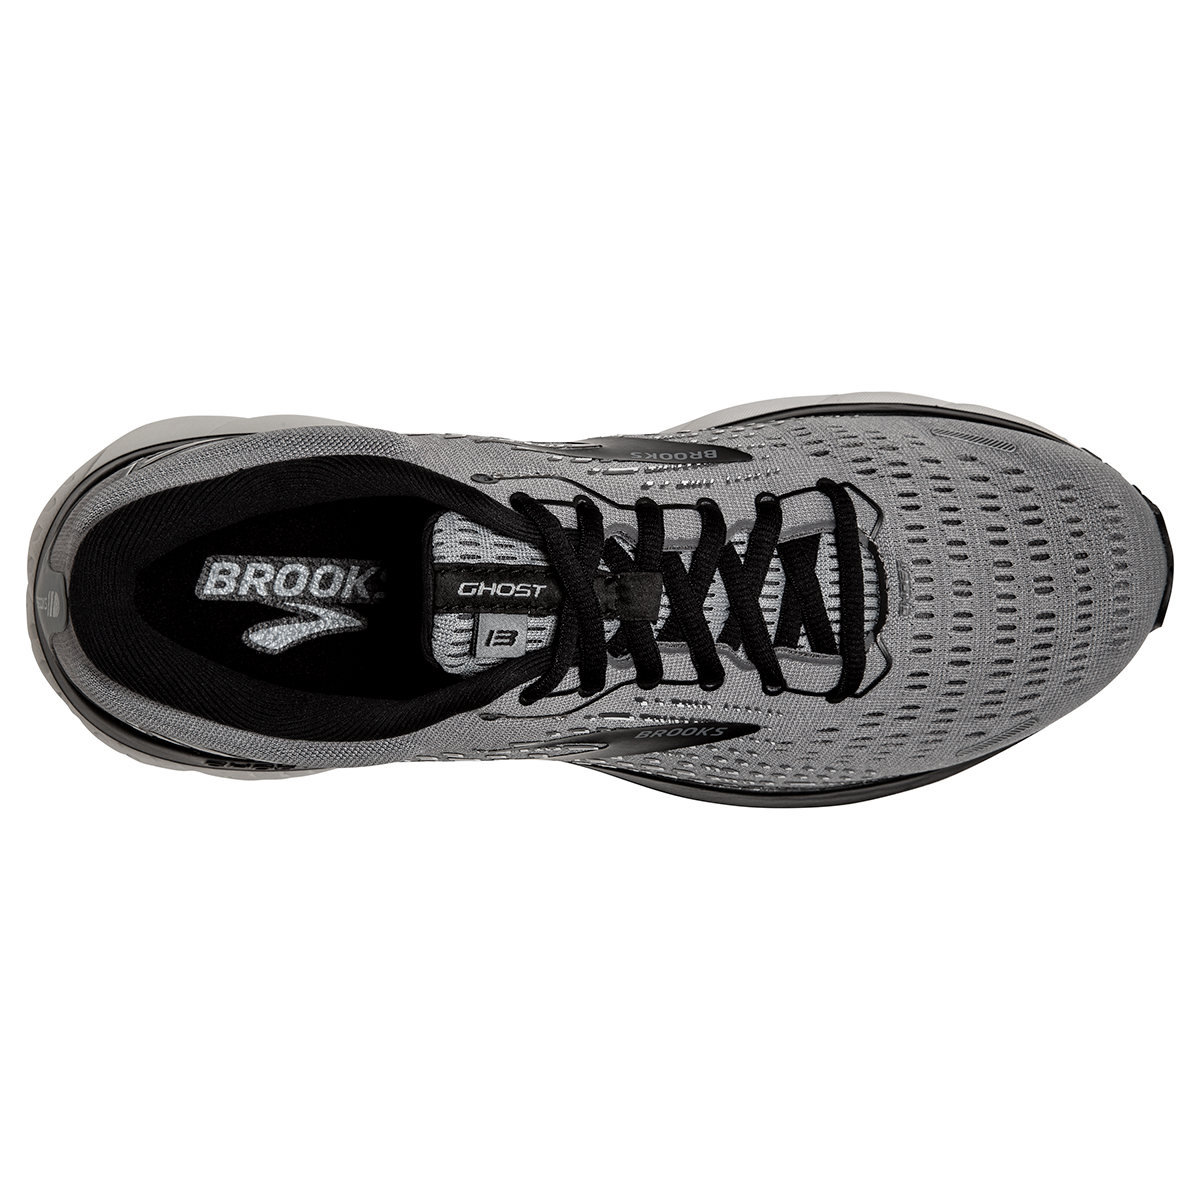 Men's Brooks Ghost 13 Running Shoe - Color: Primer Grey - Size: 7 - Width: Regular, Primer Grey, large, image 2